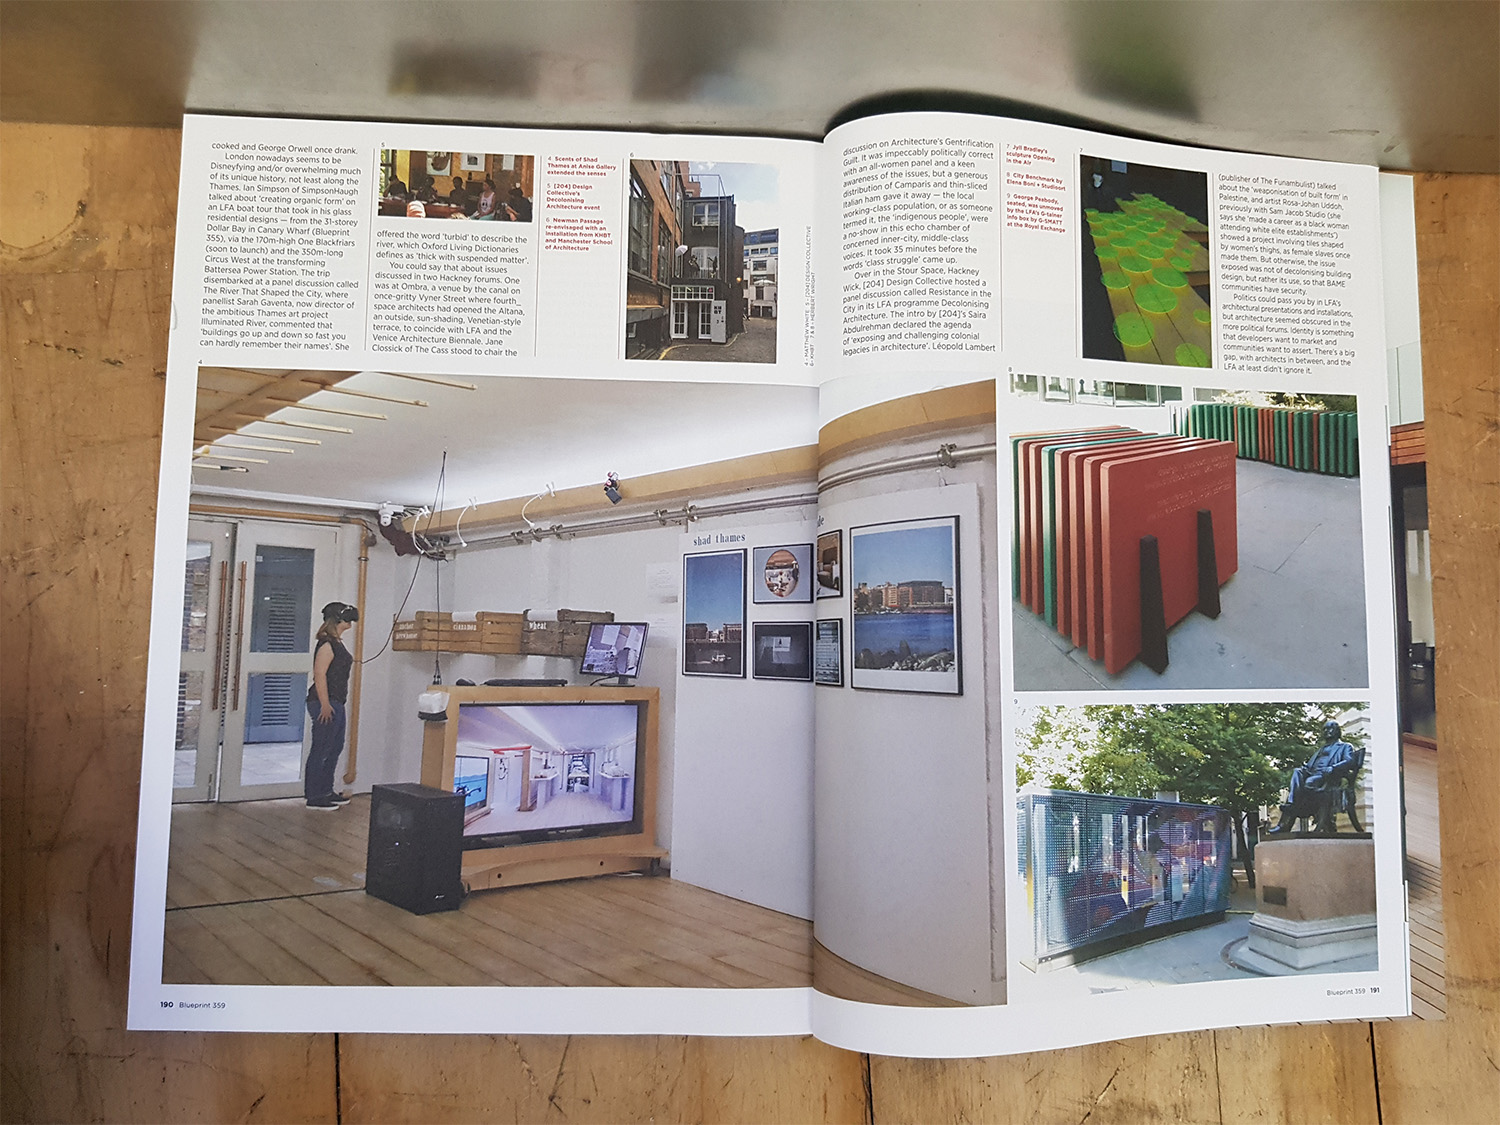 LFA Exhibition featured in Blueprint - Anise Gallery | Anise